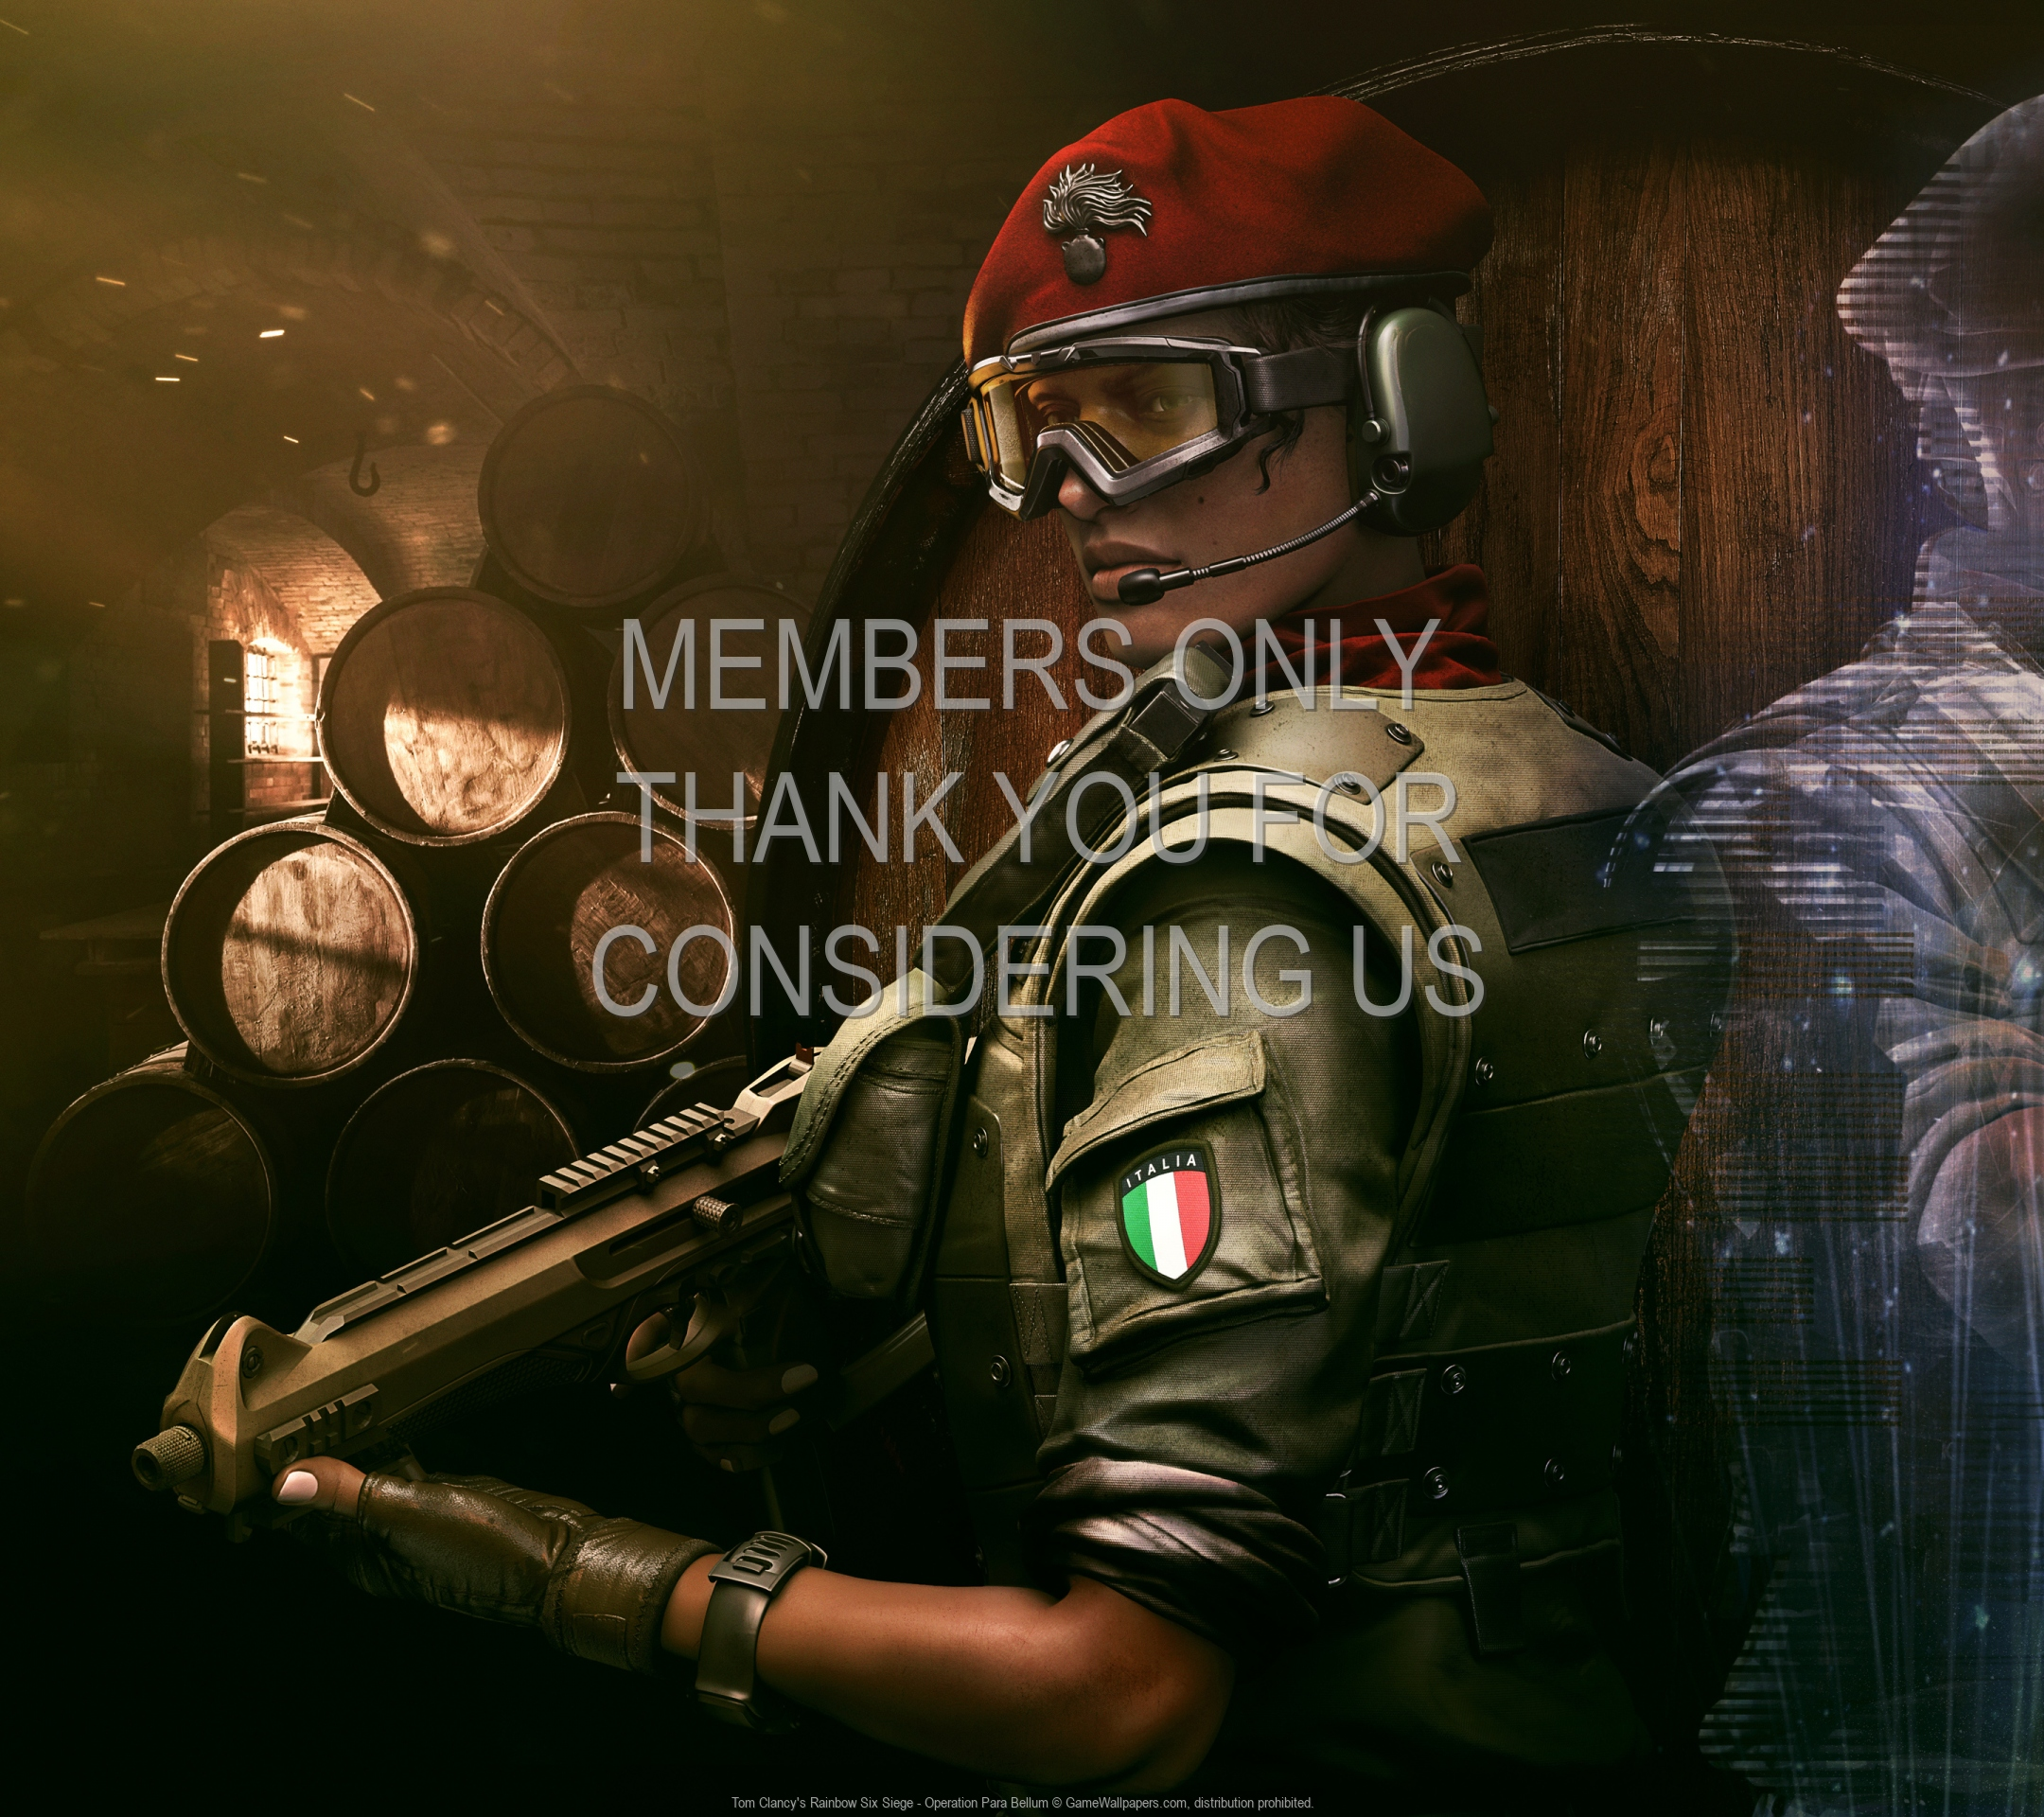 Tom Clancy's Rainbow Six: Siege - Operation Para Bellum 1920x1080 Mobile wallpaper or background 02